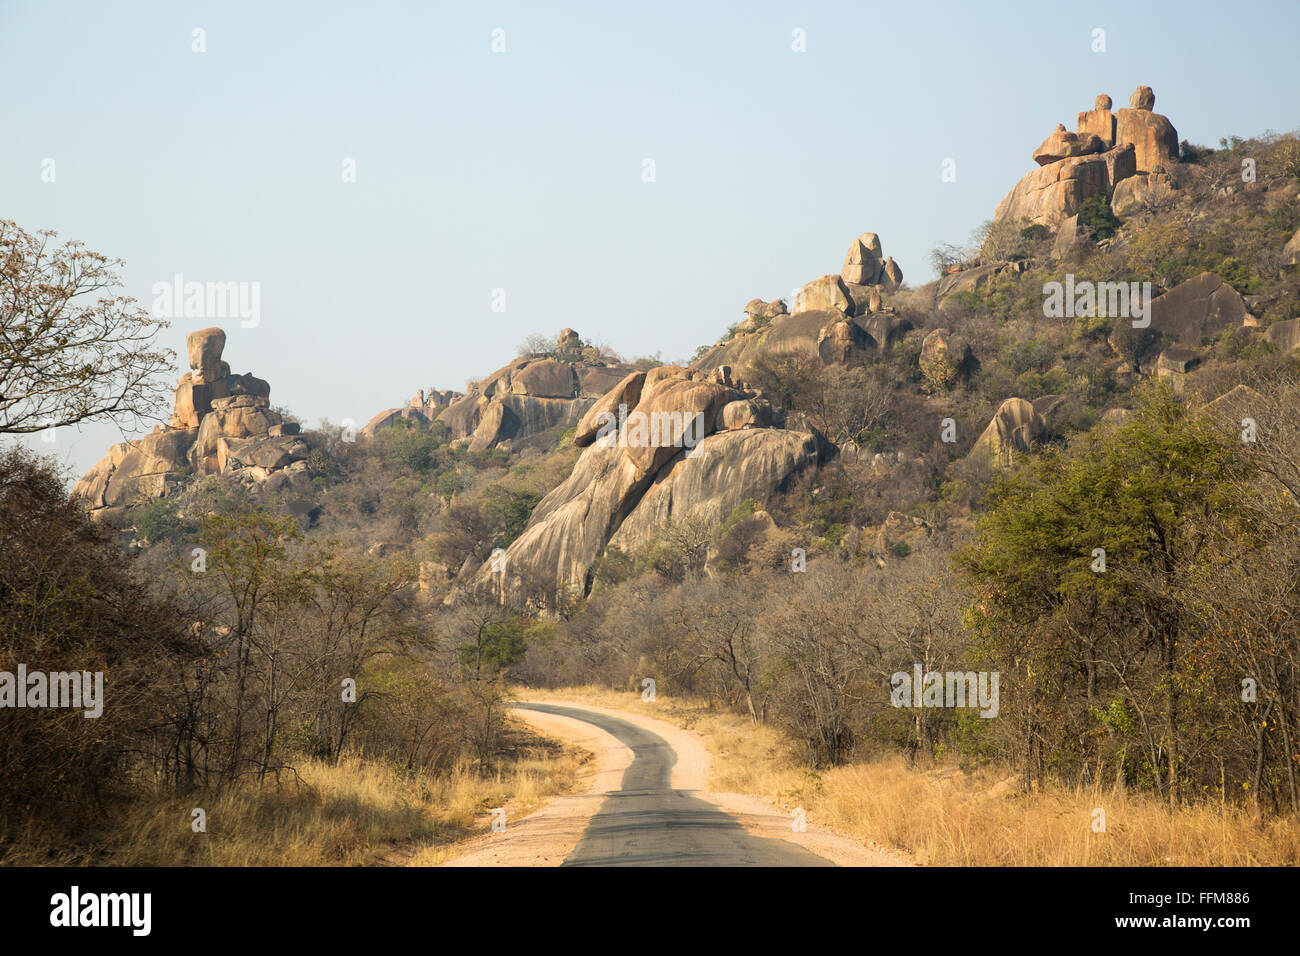 Scenic view of the access road to the Matobo National Park showing large granite boulder koppies - Stock Image